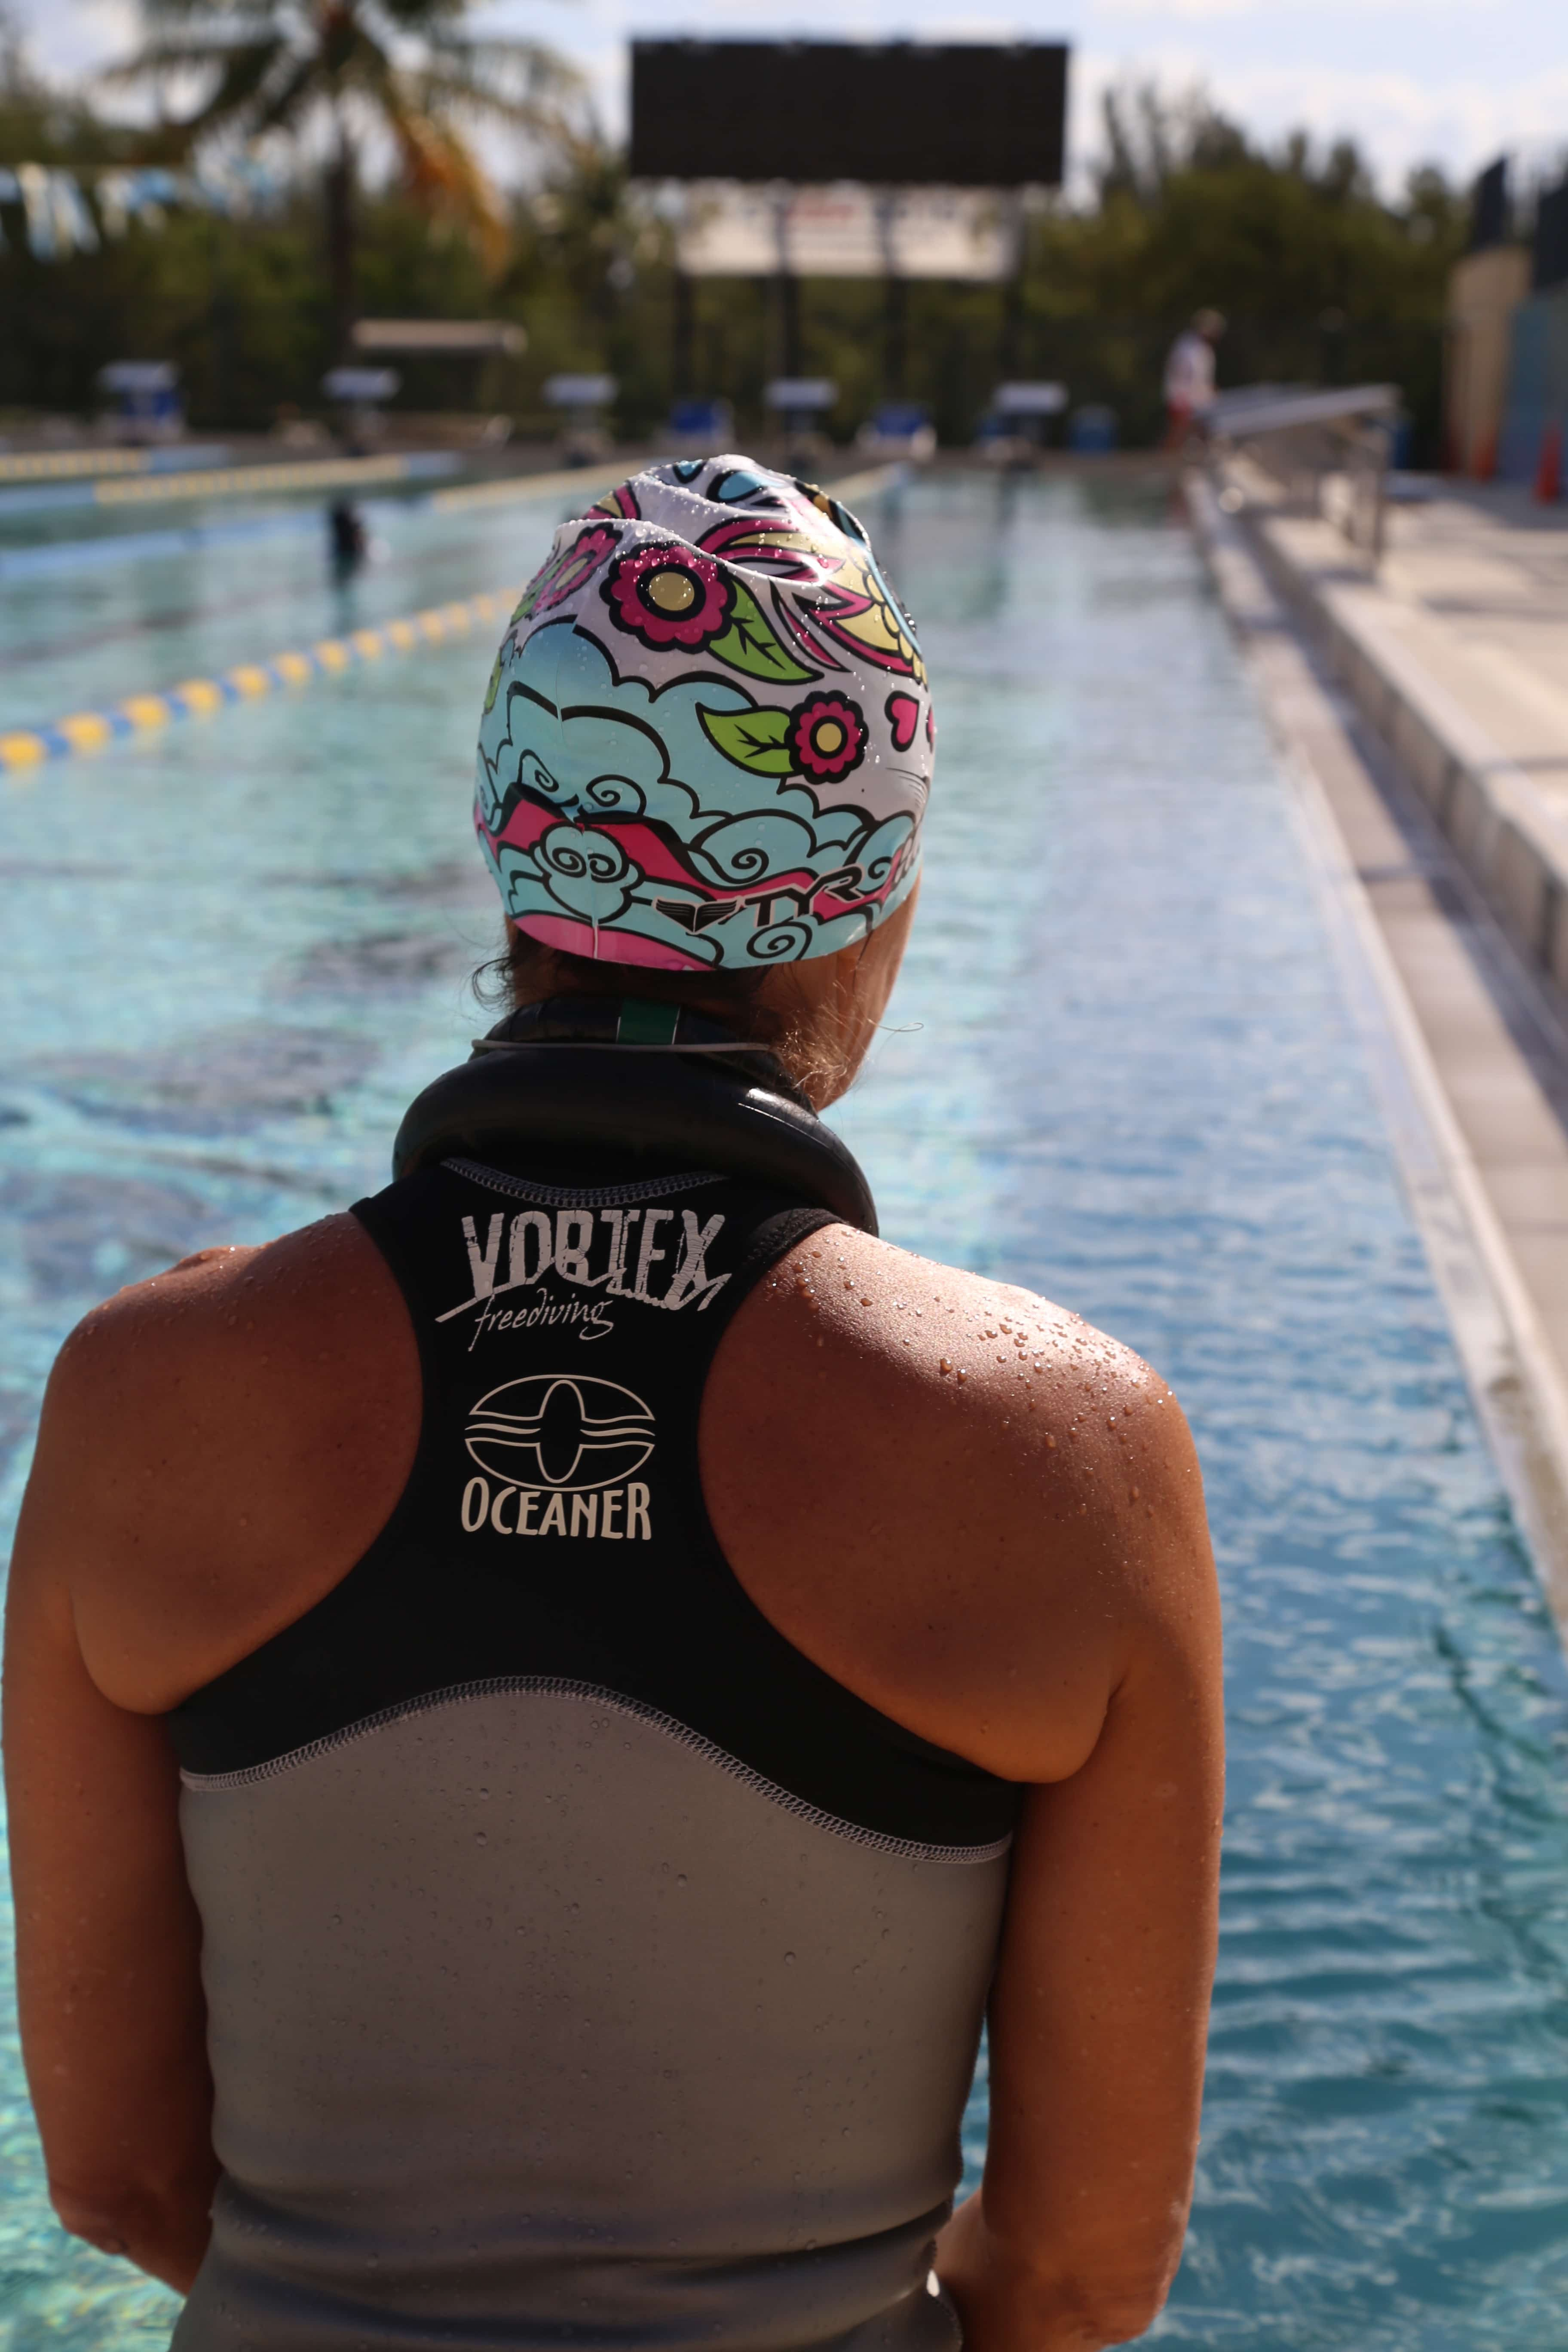 Claire Paris prepares for a personal best DYN swim of 150M